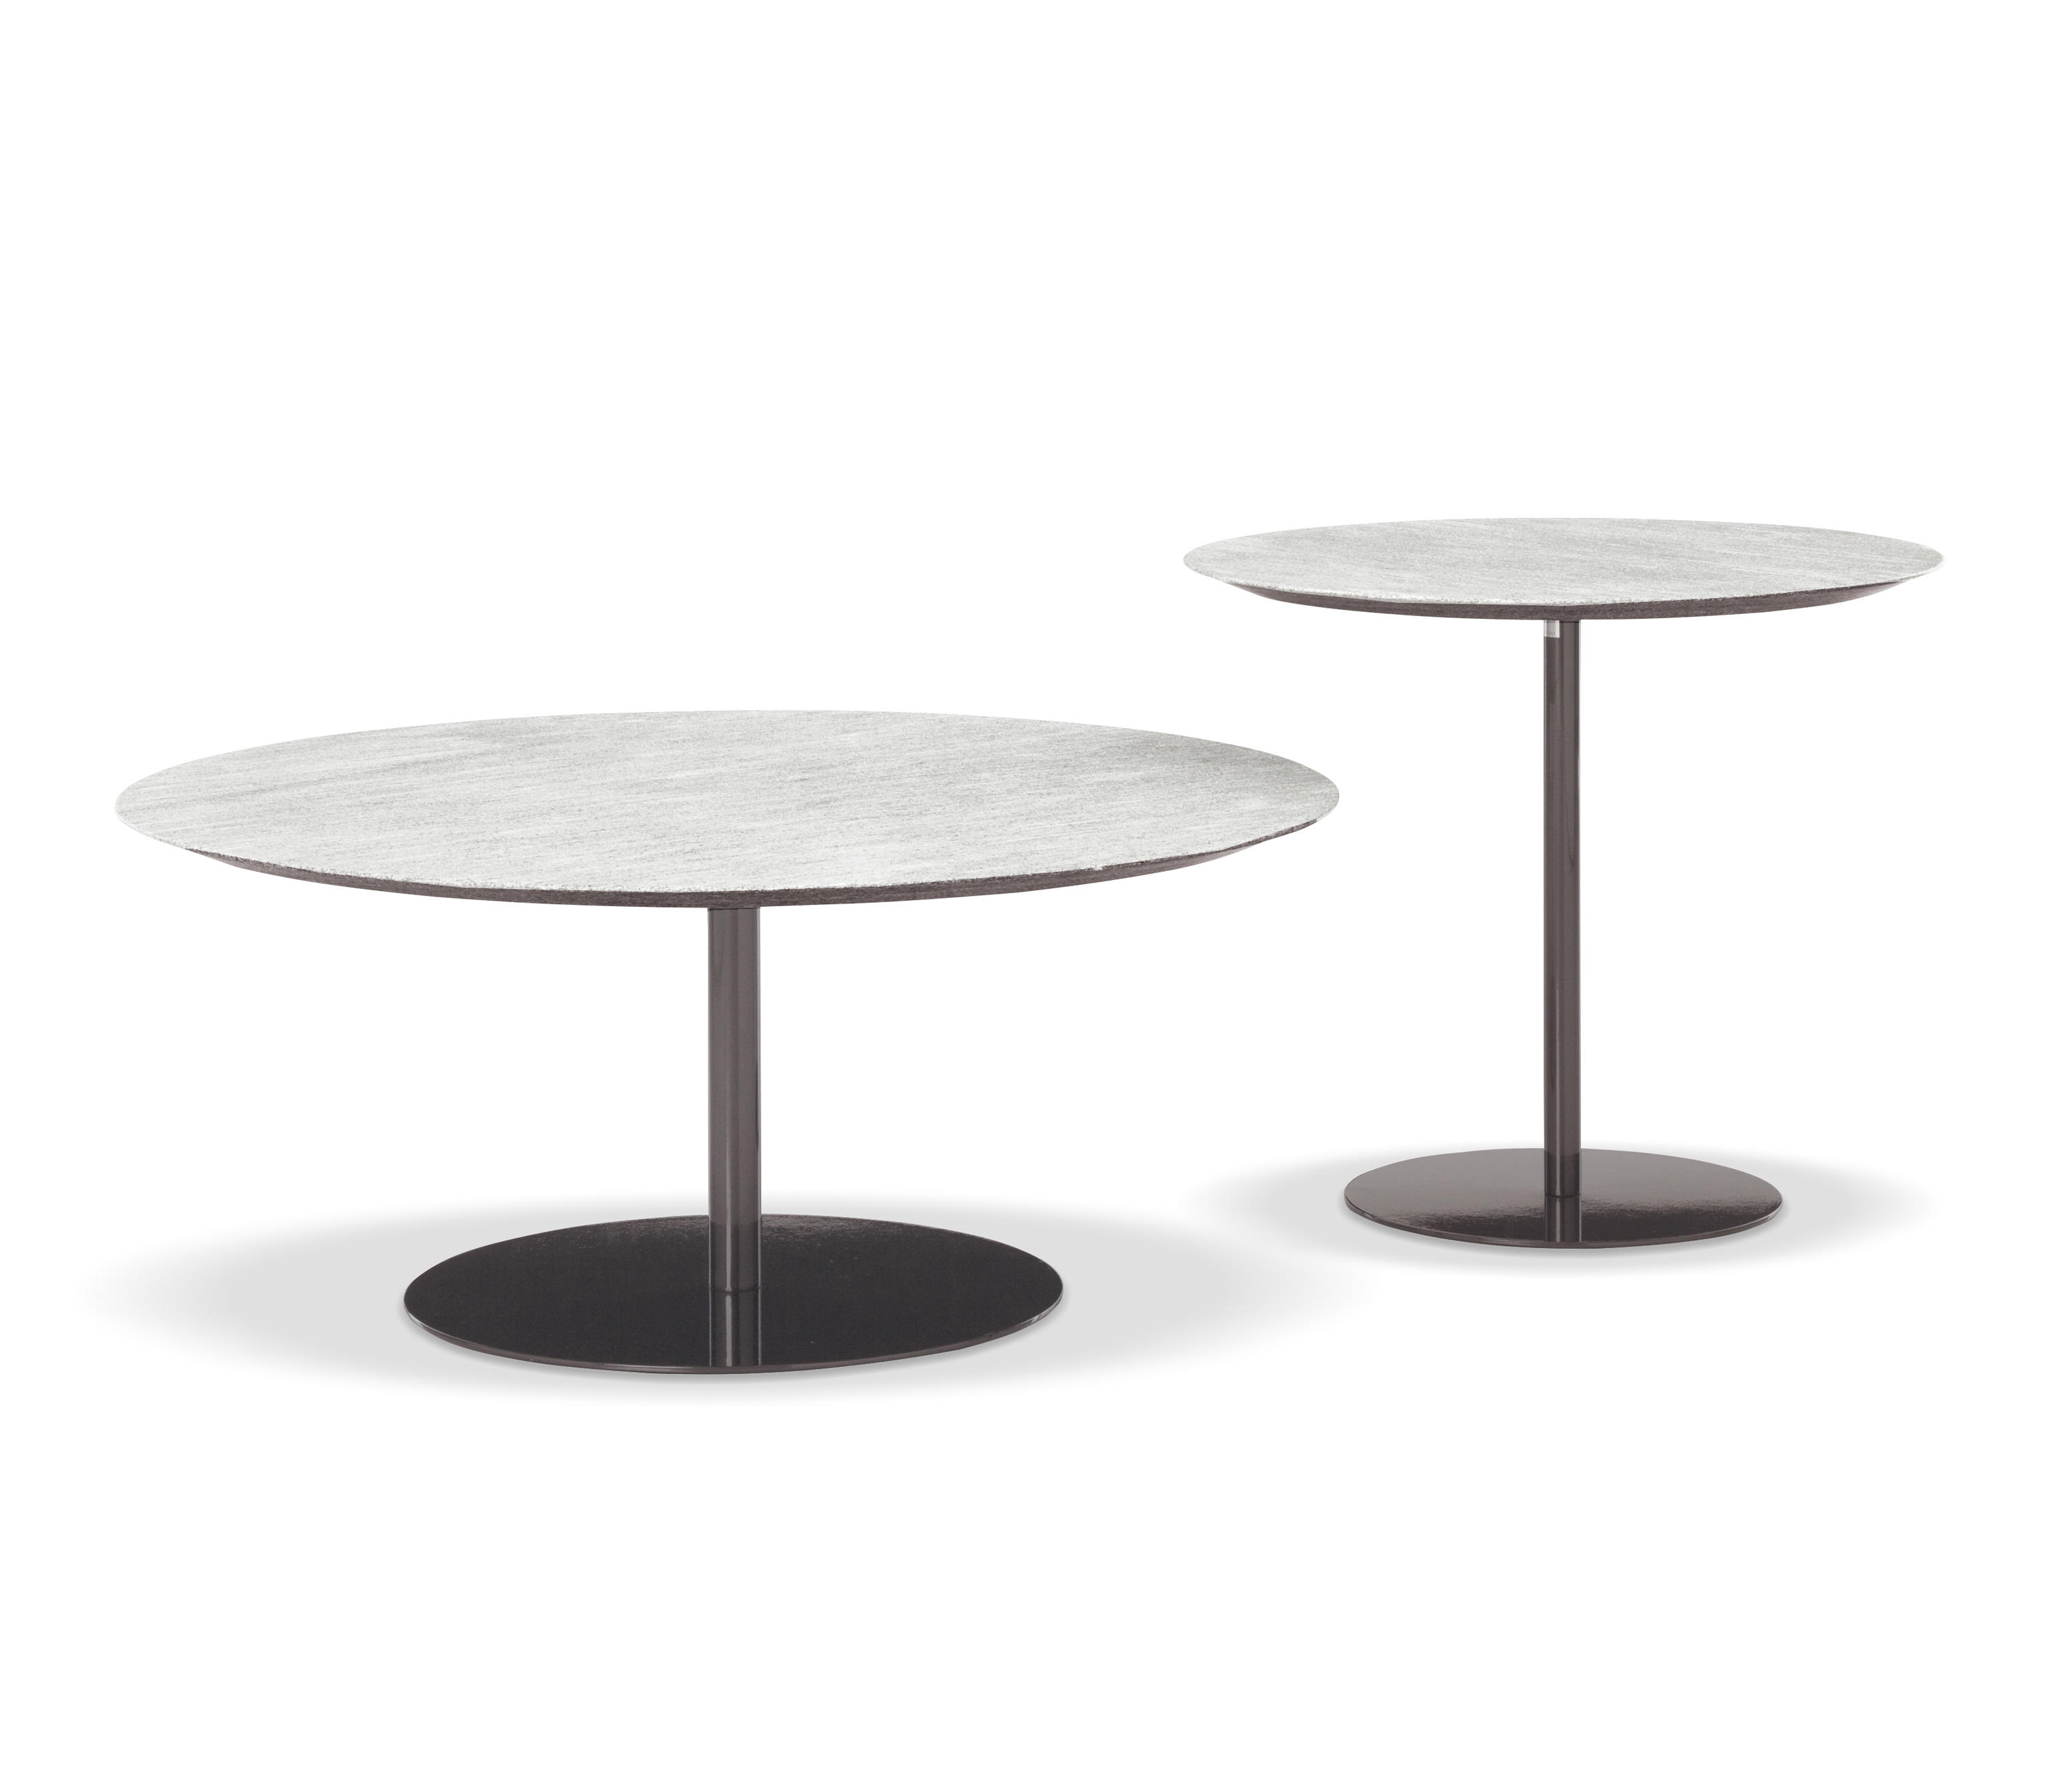 Bellagio Outdoor Lounge H61 Side Tables From Minotti